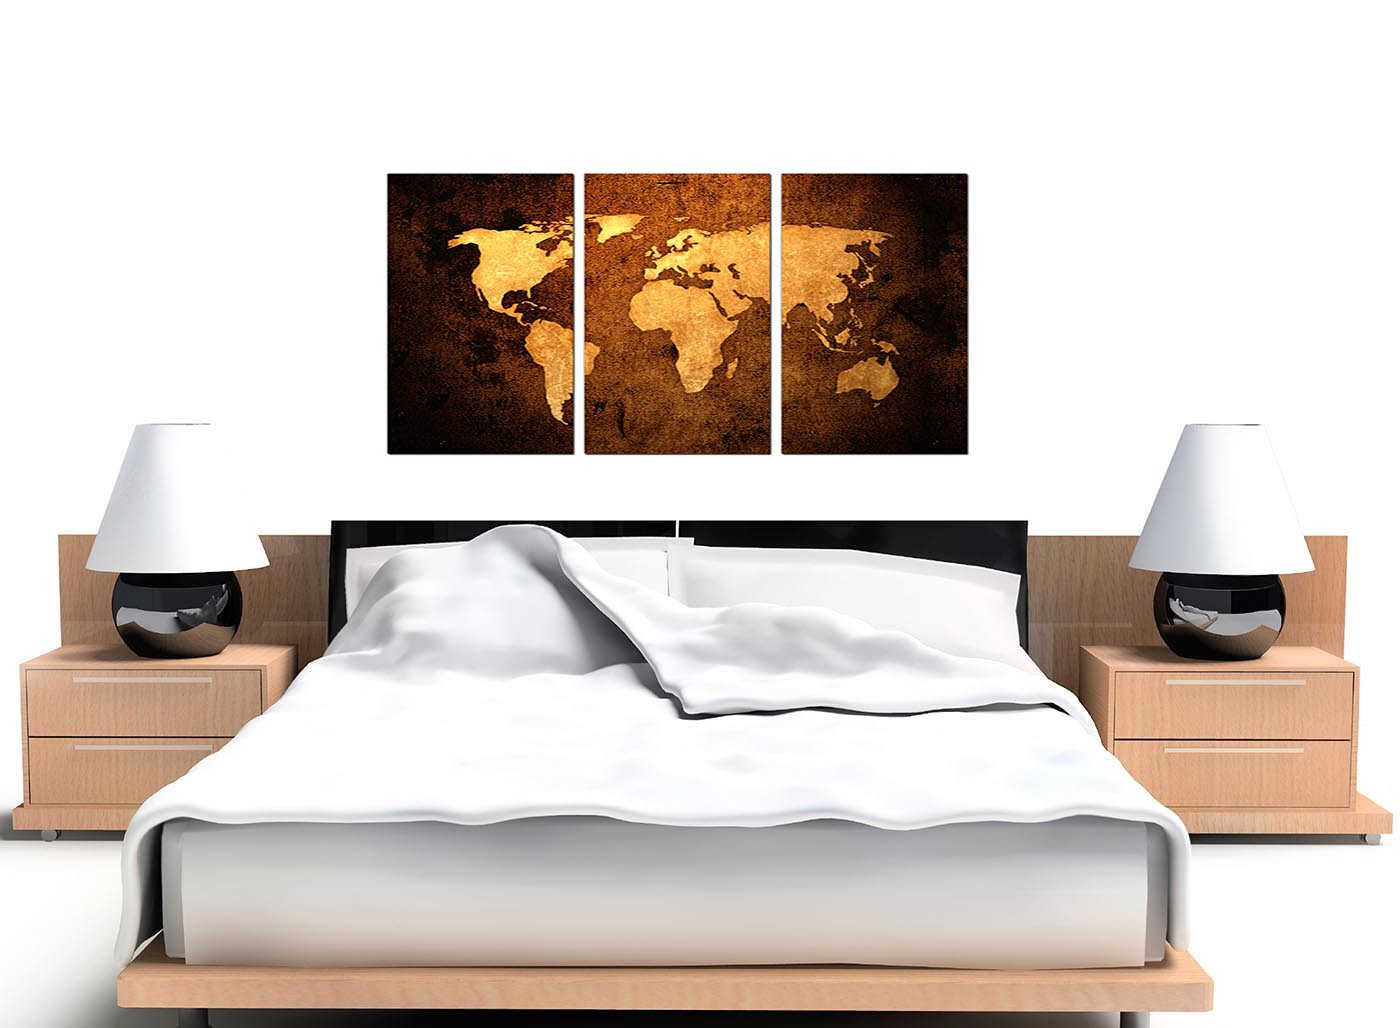 Vintage world map canvas wall art set of 3 for your bedroom modern vintage old world map brown cream canvas set of 3 125cm 3188 gumiabroncs Images